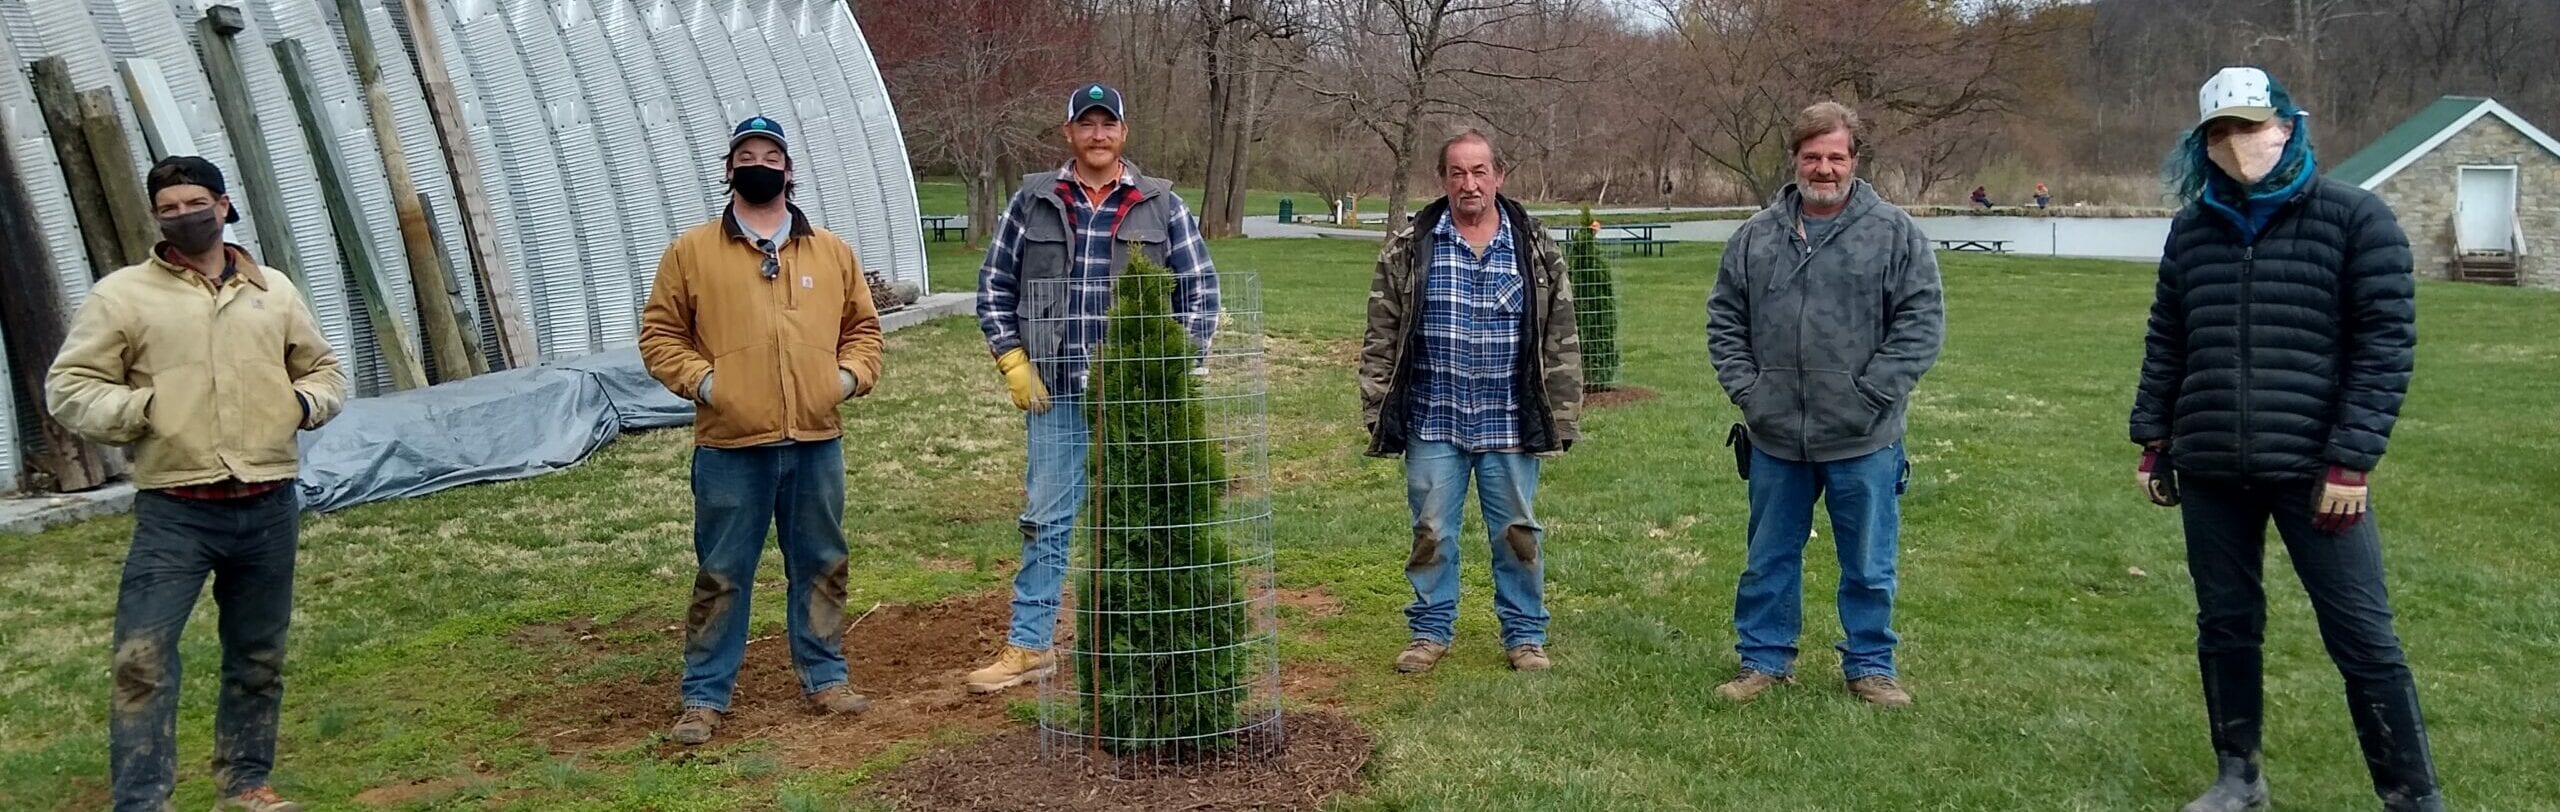 Martinsburg – Berkeley County Parks and Recreation | Spring 2021